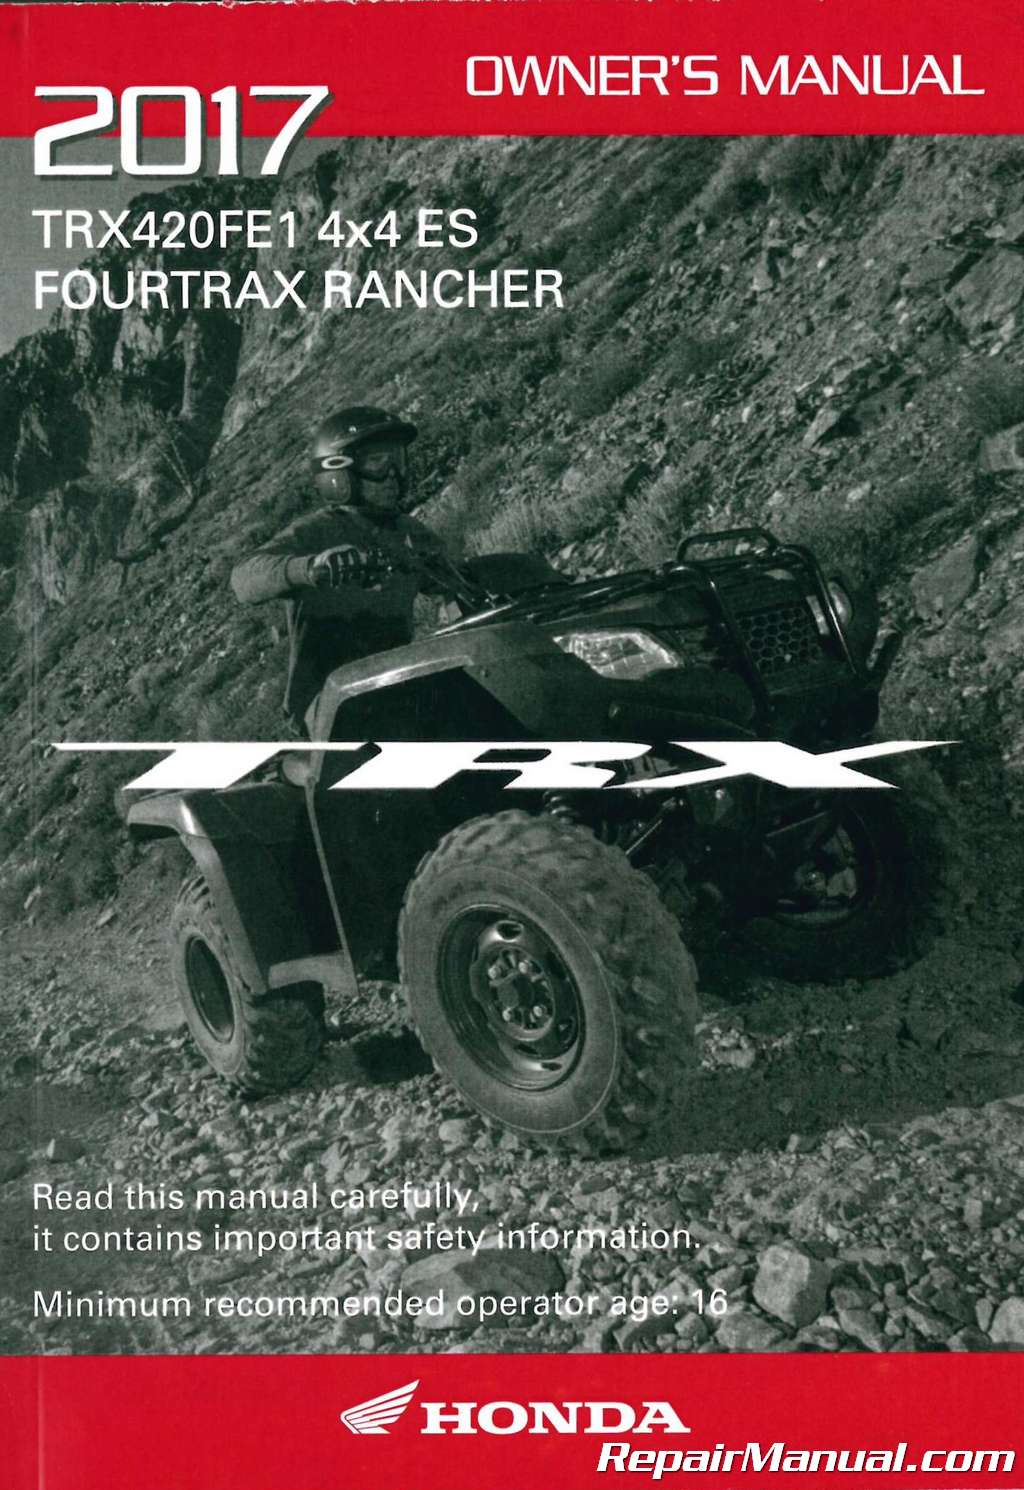 2017 Honda Trx420fe1 Atv Owners Manual